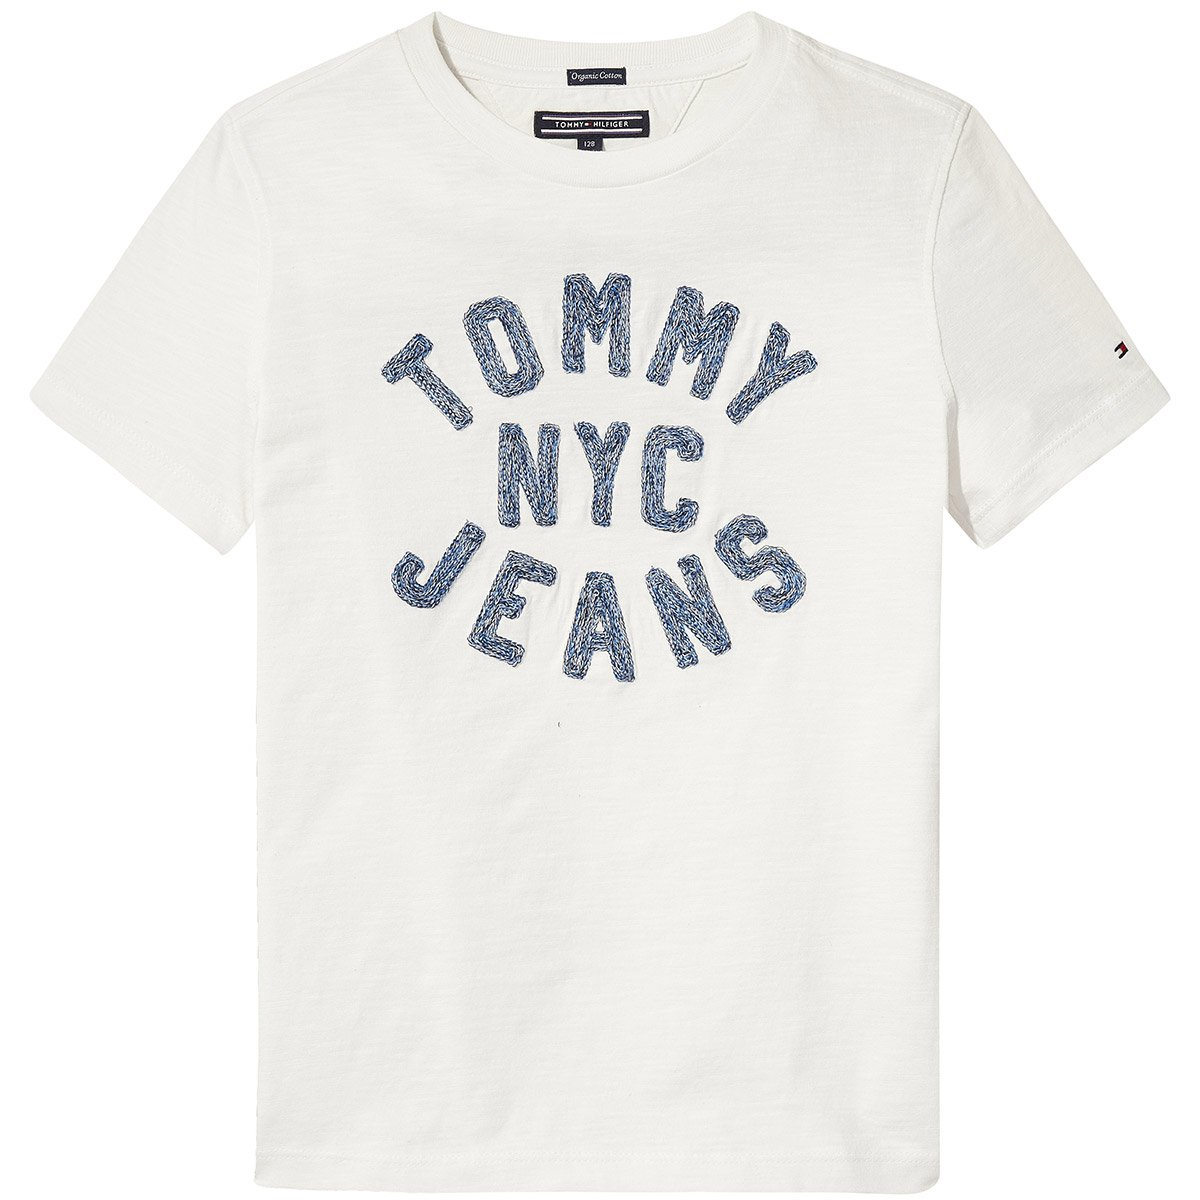 Tommy Hilfiger - D Texture CHAINSTITCH tee S/S - Polo NIÑO: Amazon ...